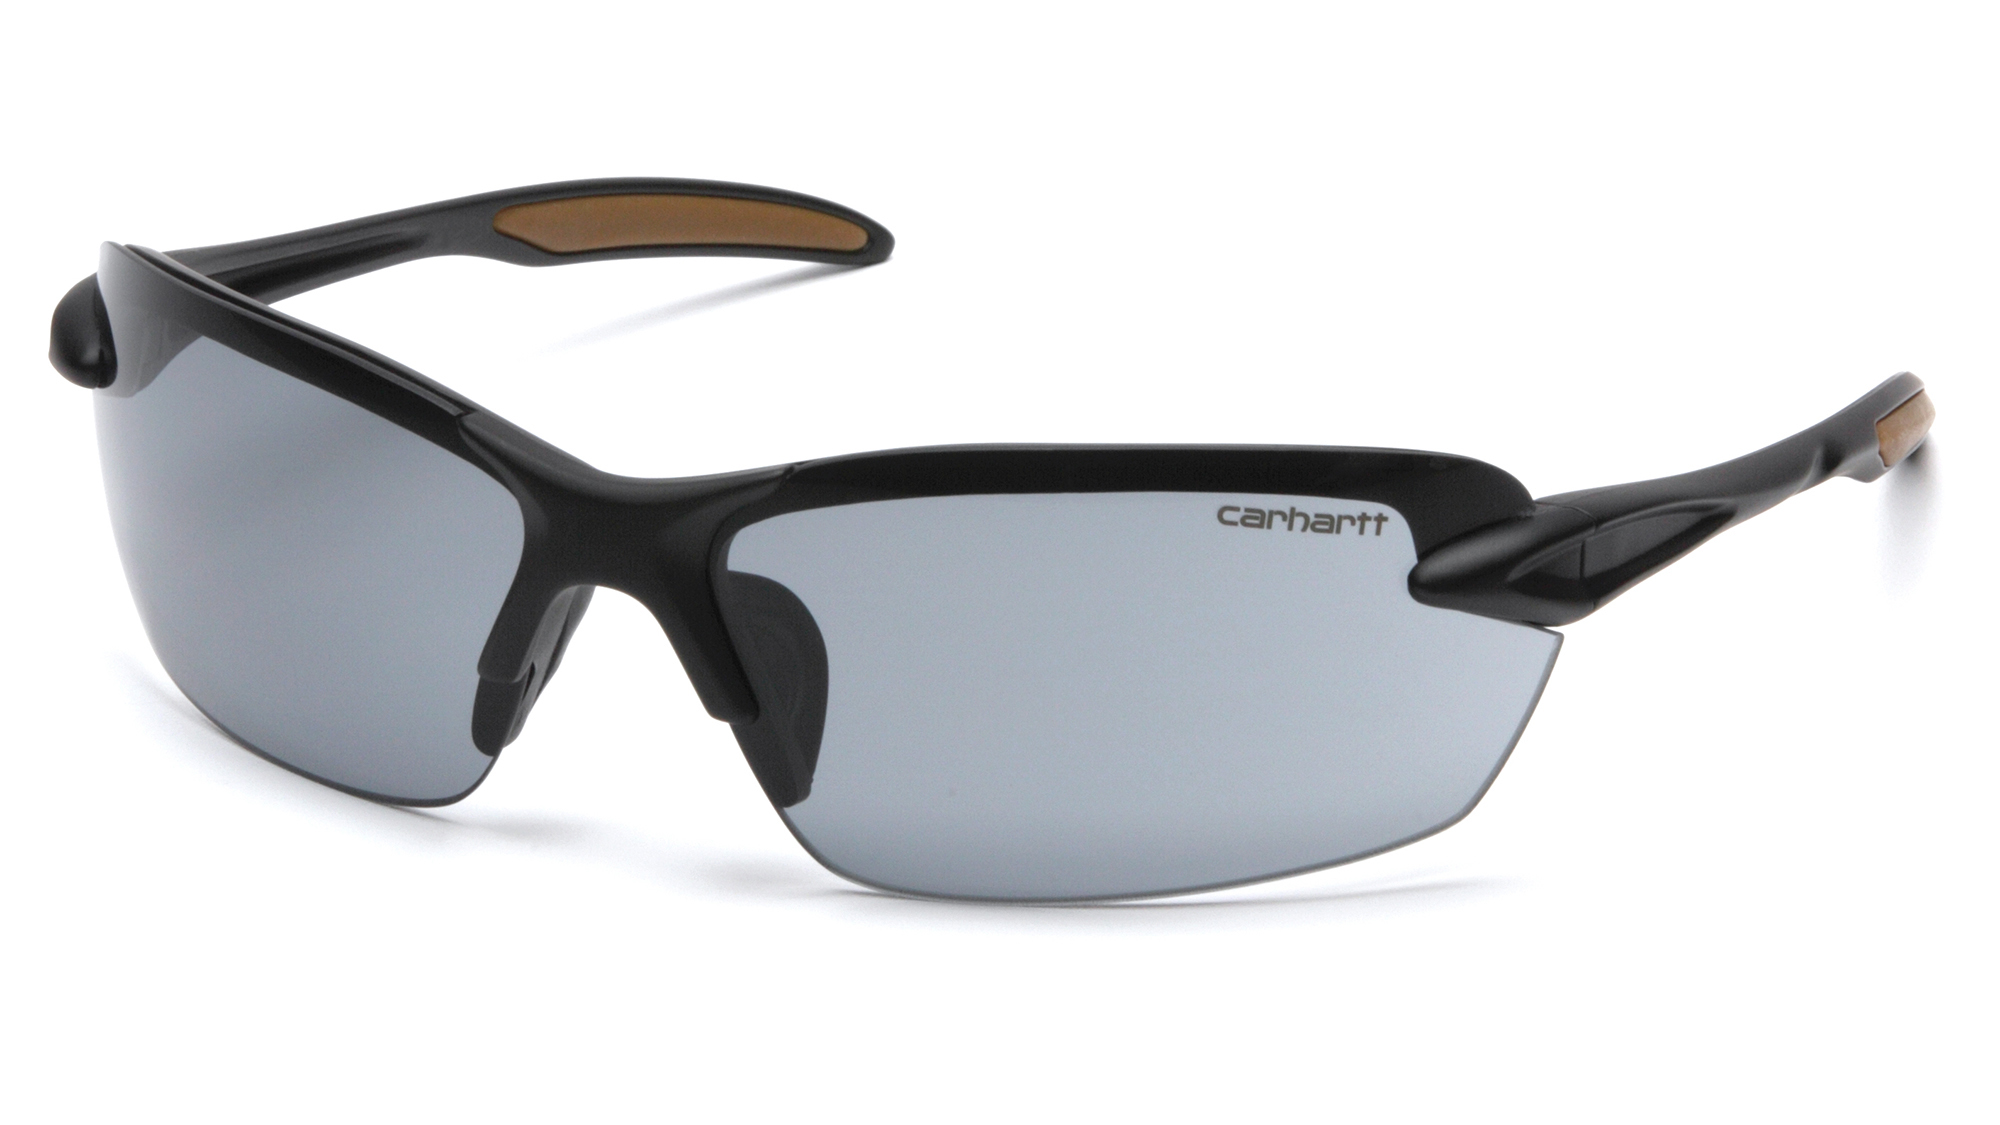 Carhartt Spokane Gray Lens Safety Glasses-